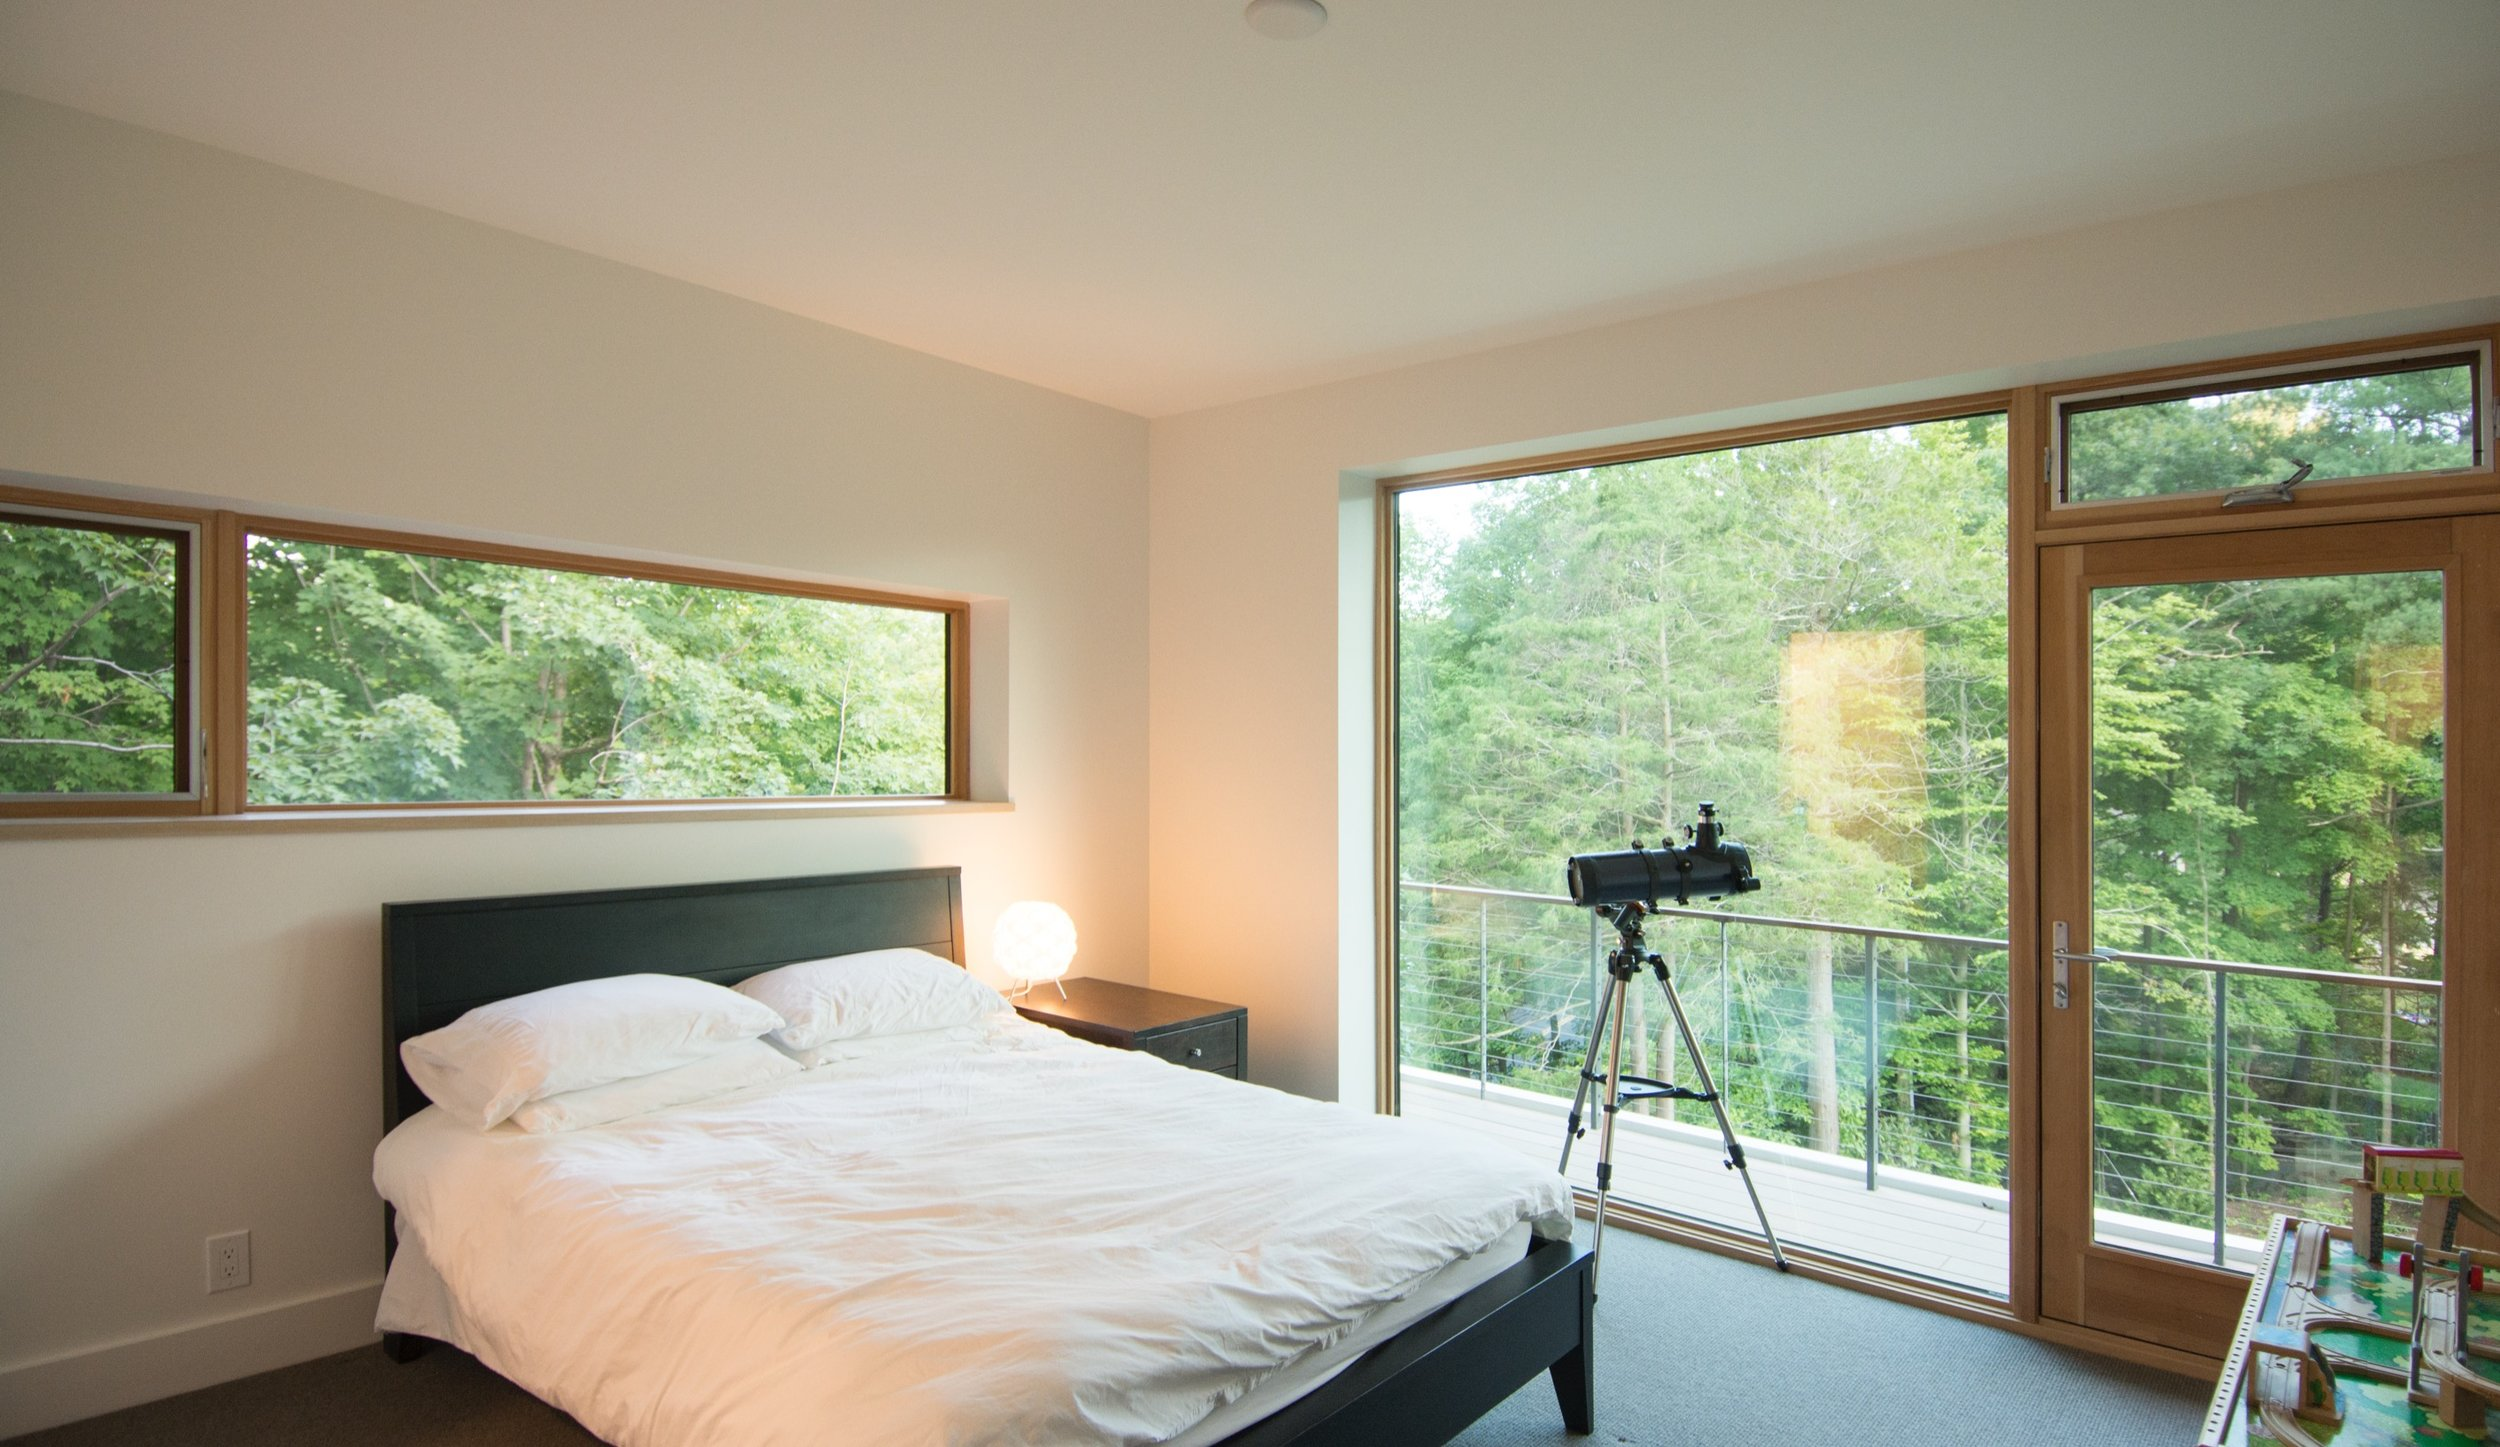 Bedroom with balcony and views into trees